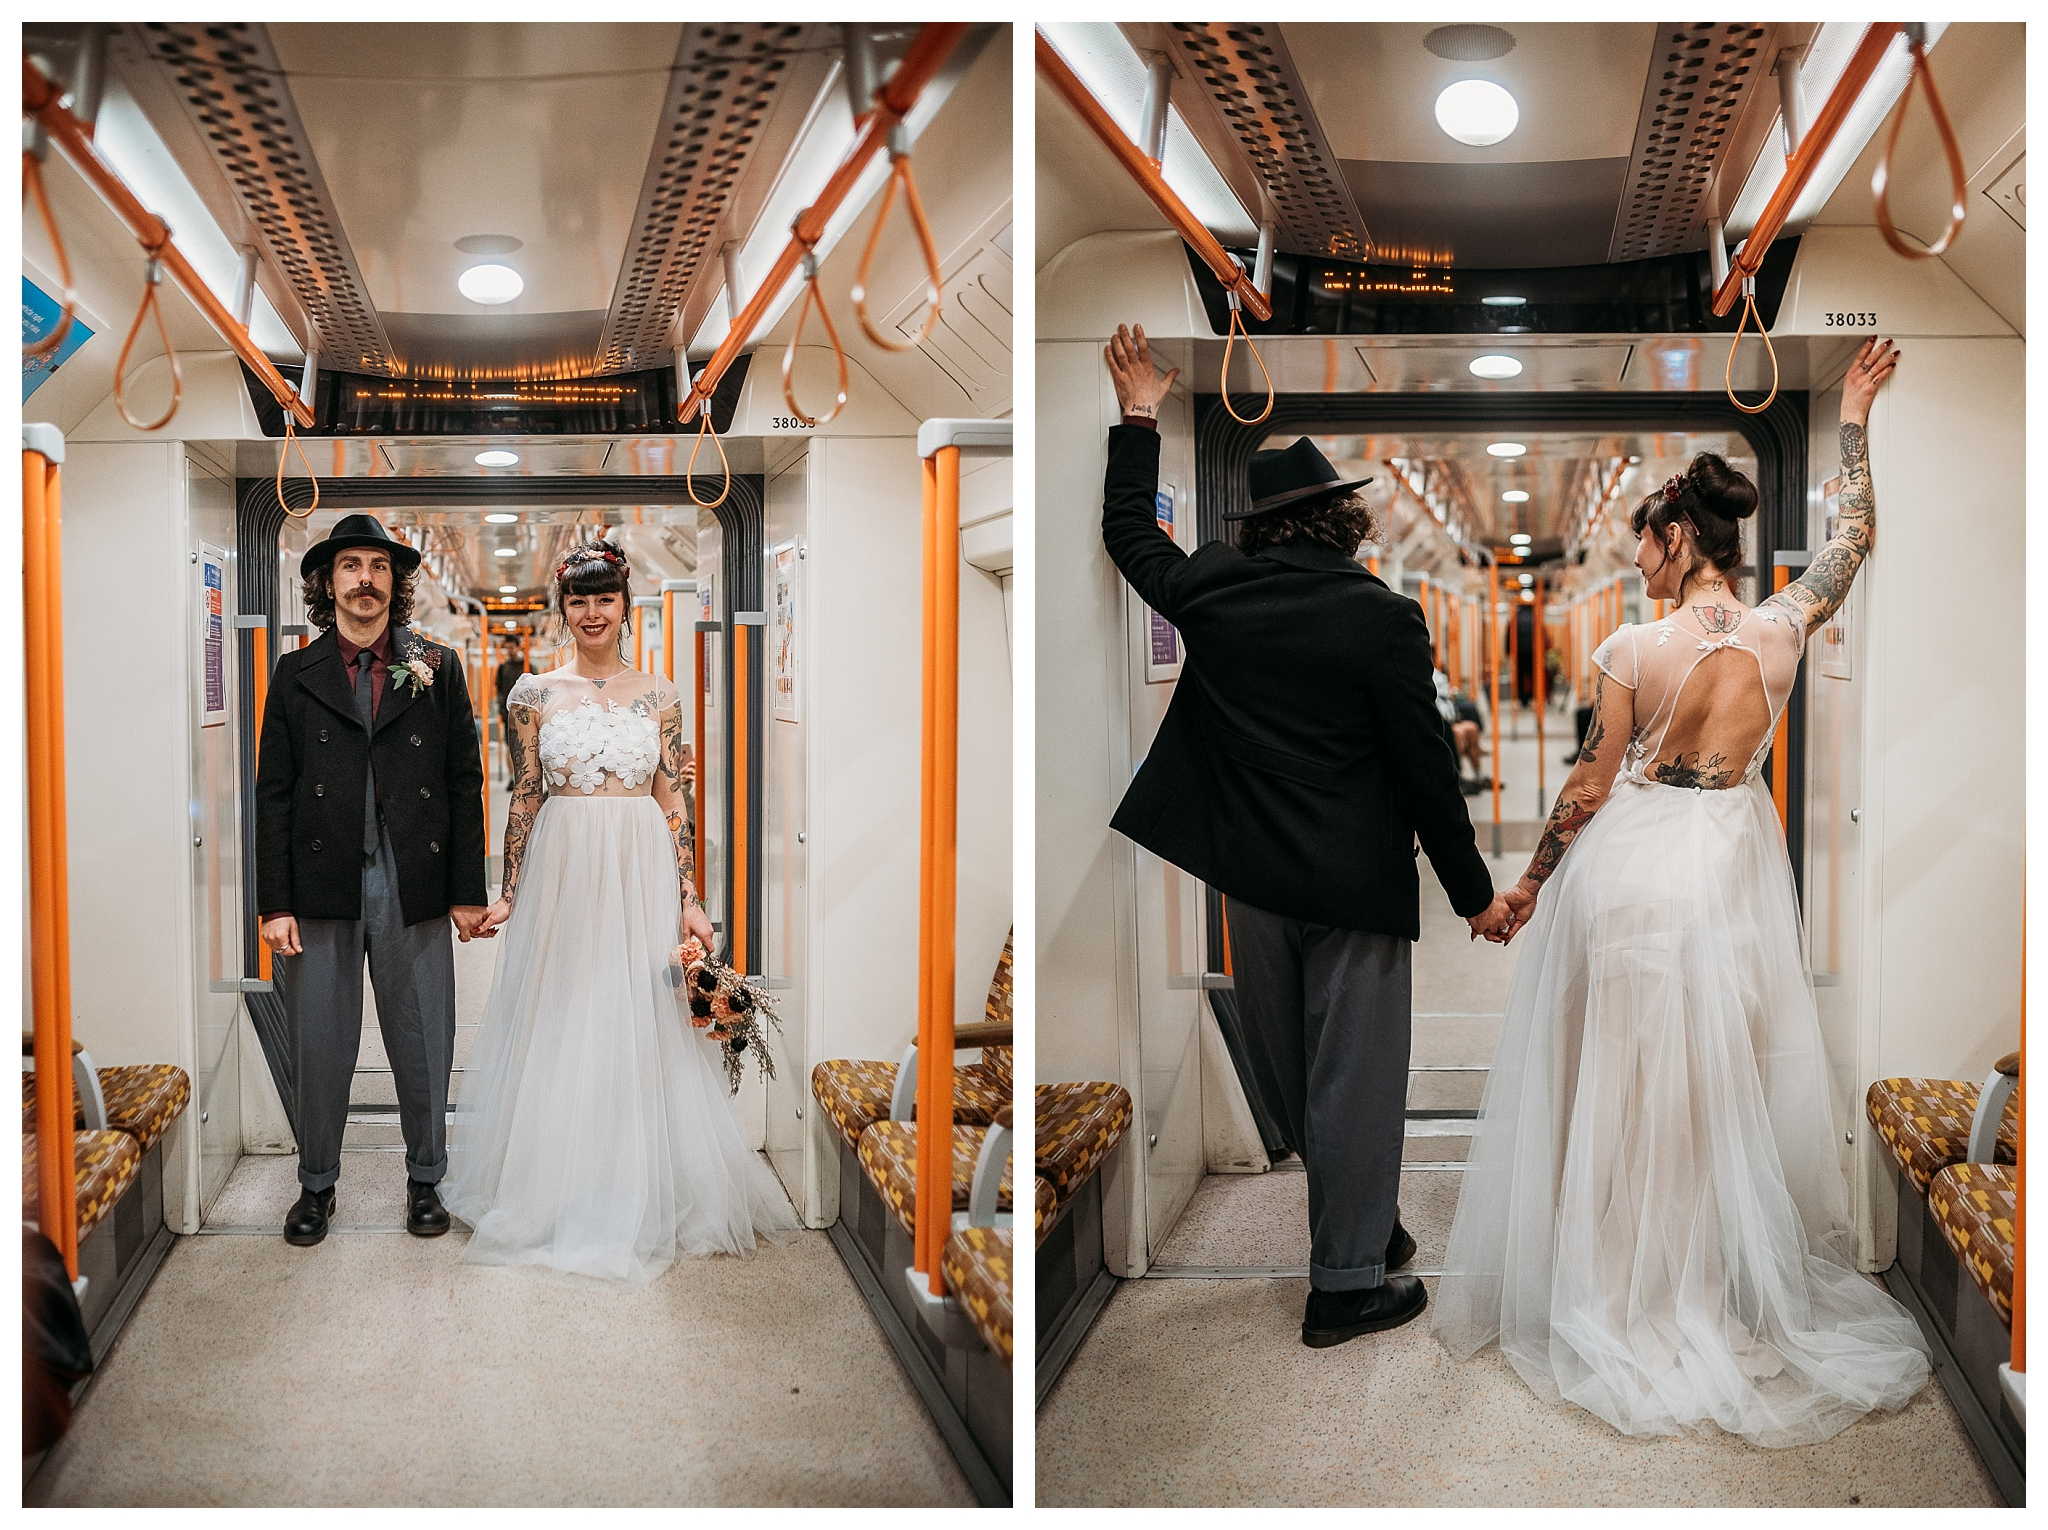 Tattoo bride and groom in London tube